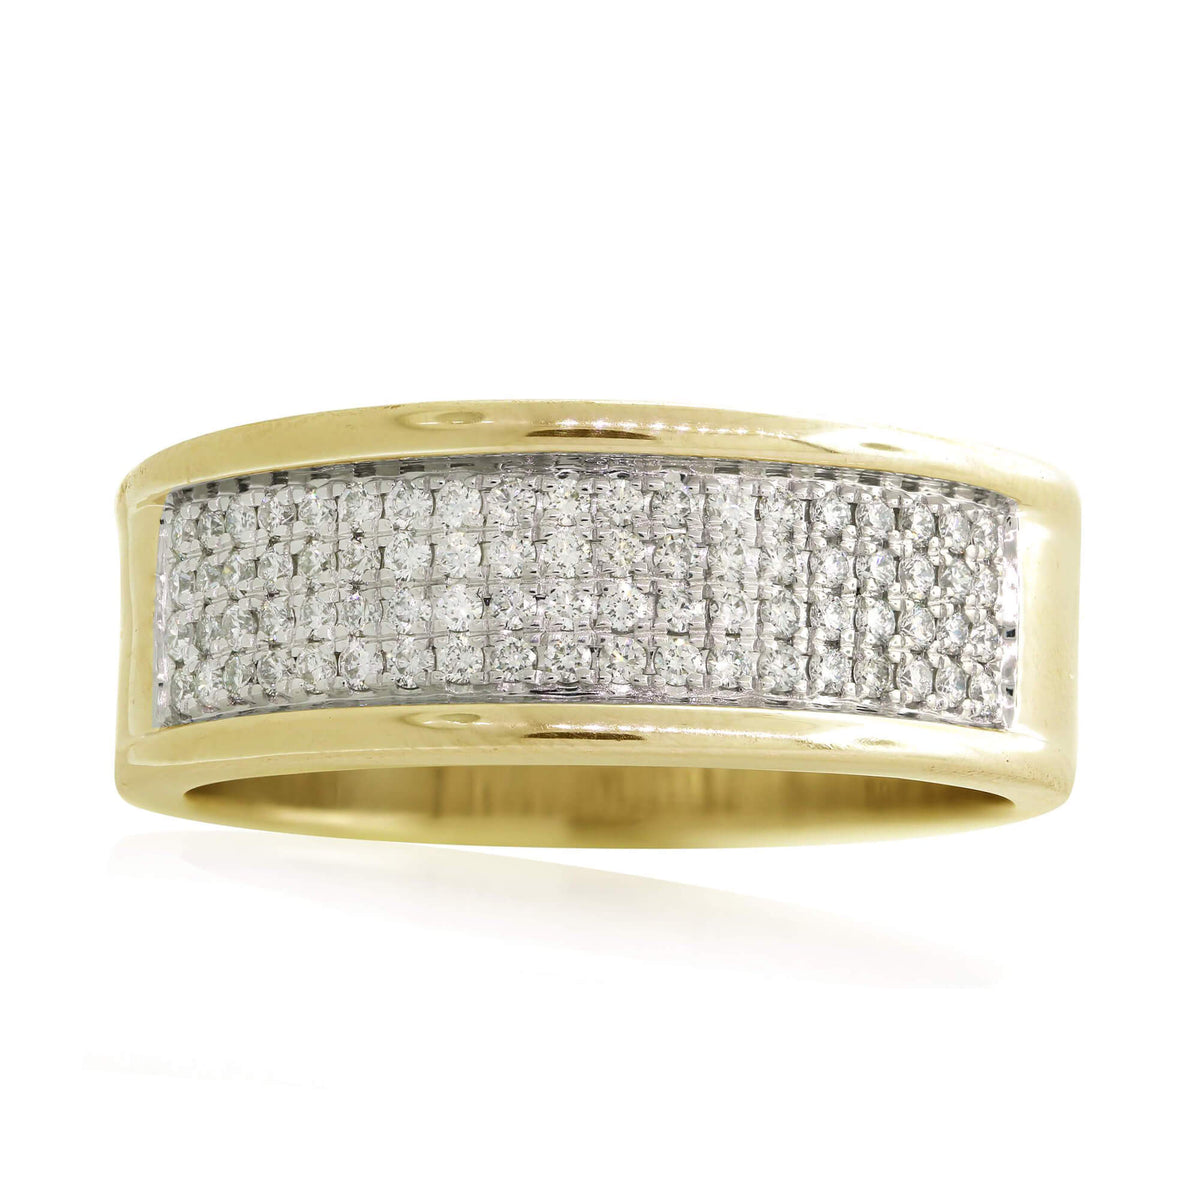 Miché Collection 0.74 Ct Diamond Micro Pavé Set Mens Ring in 10k Gold